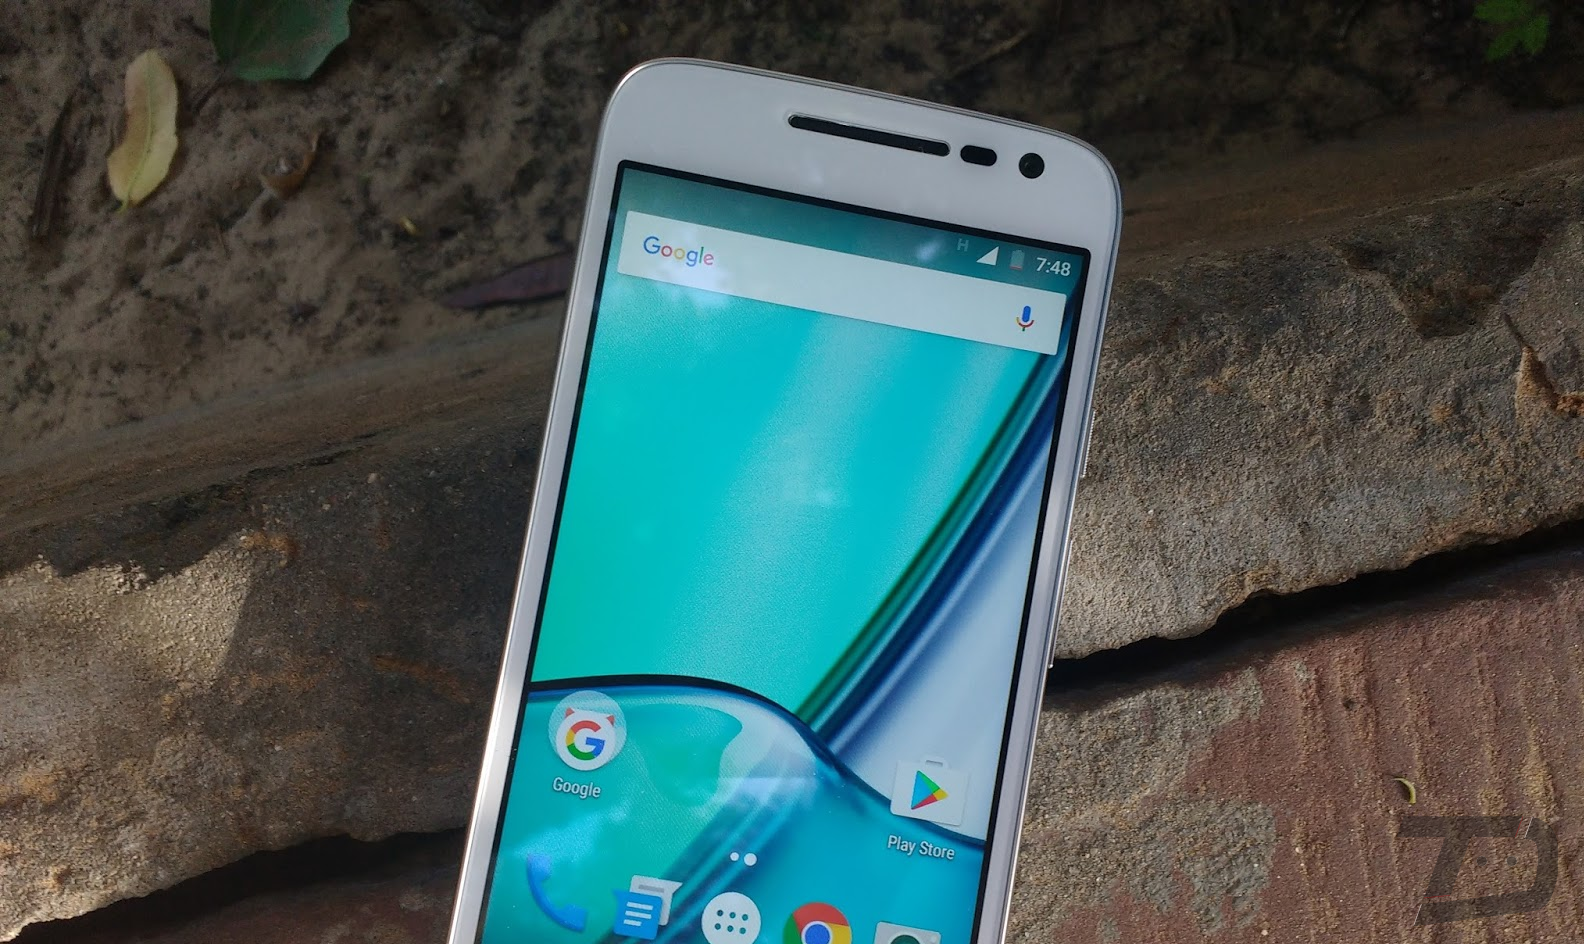 Motorola Moto G4 Play to see Android 7.0 Nougat upgrade in June